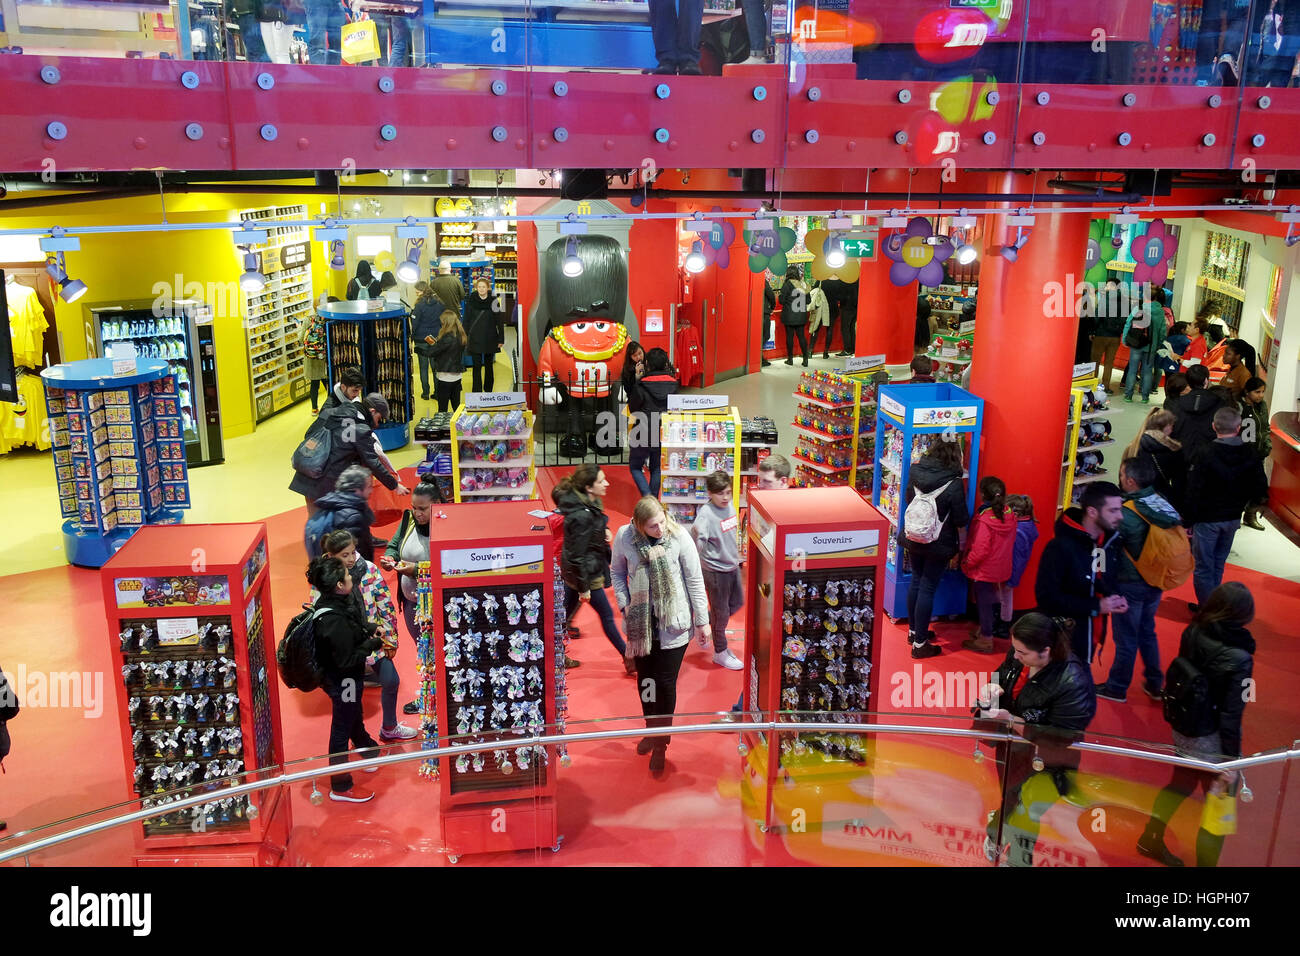 London,Uk - April 15, 2016: Tourists inside the M&M's World. Stock Photo